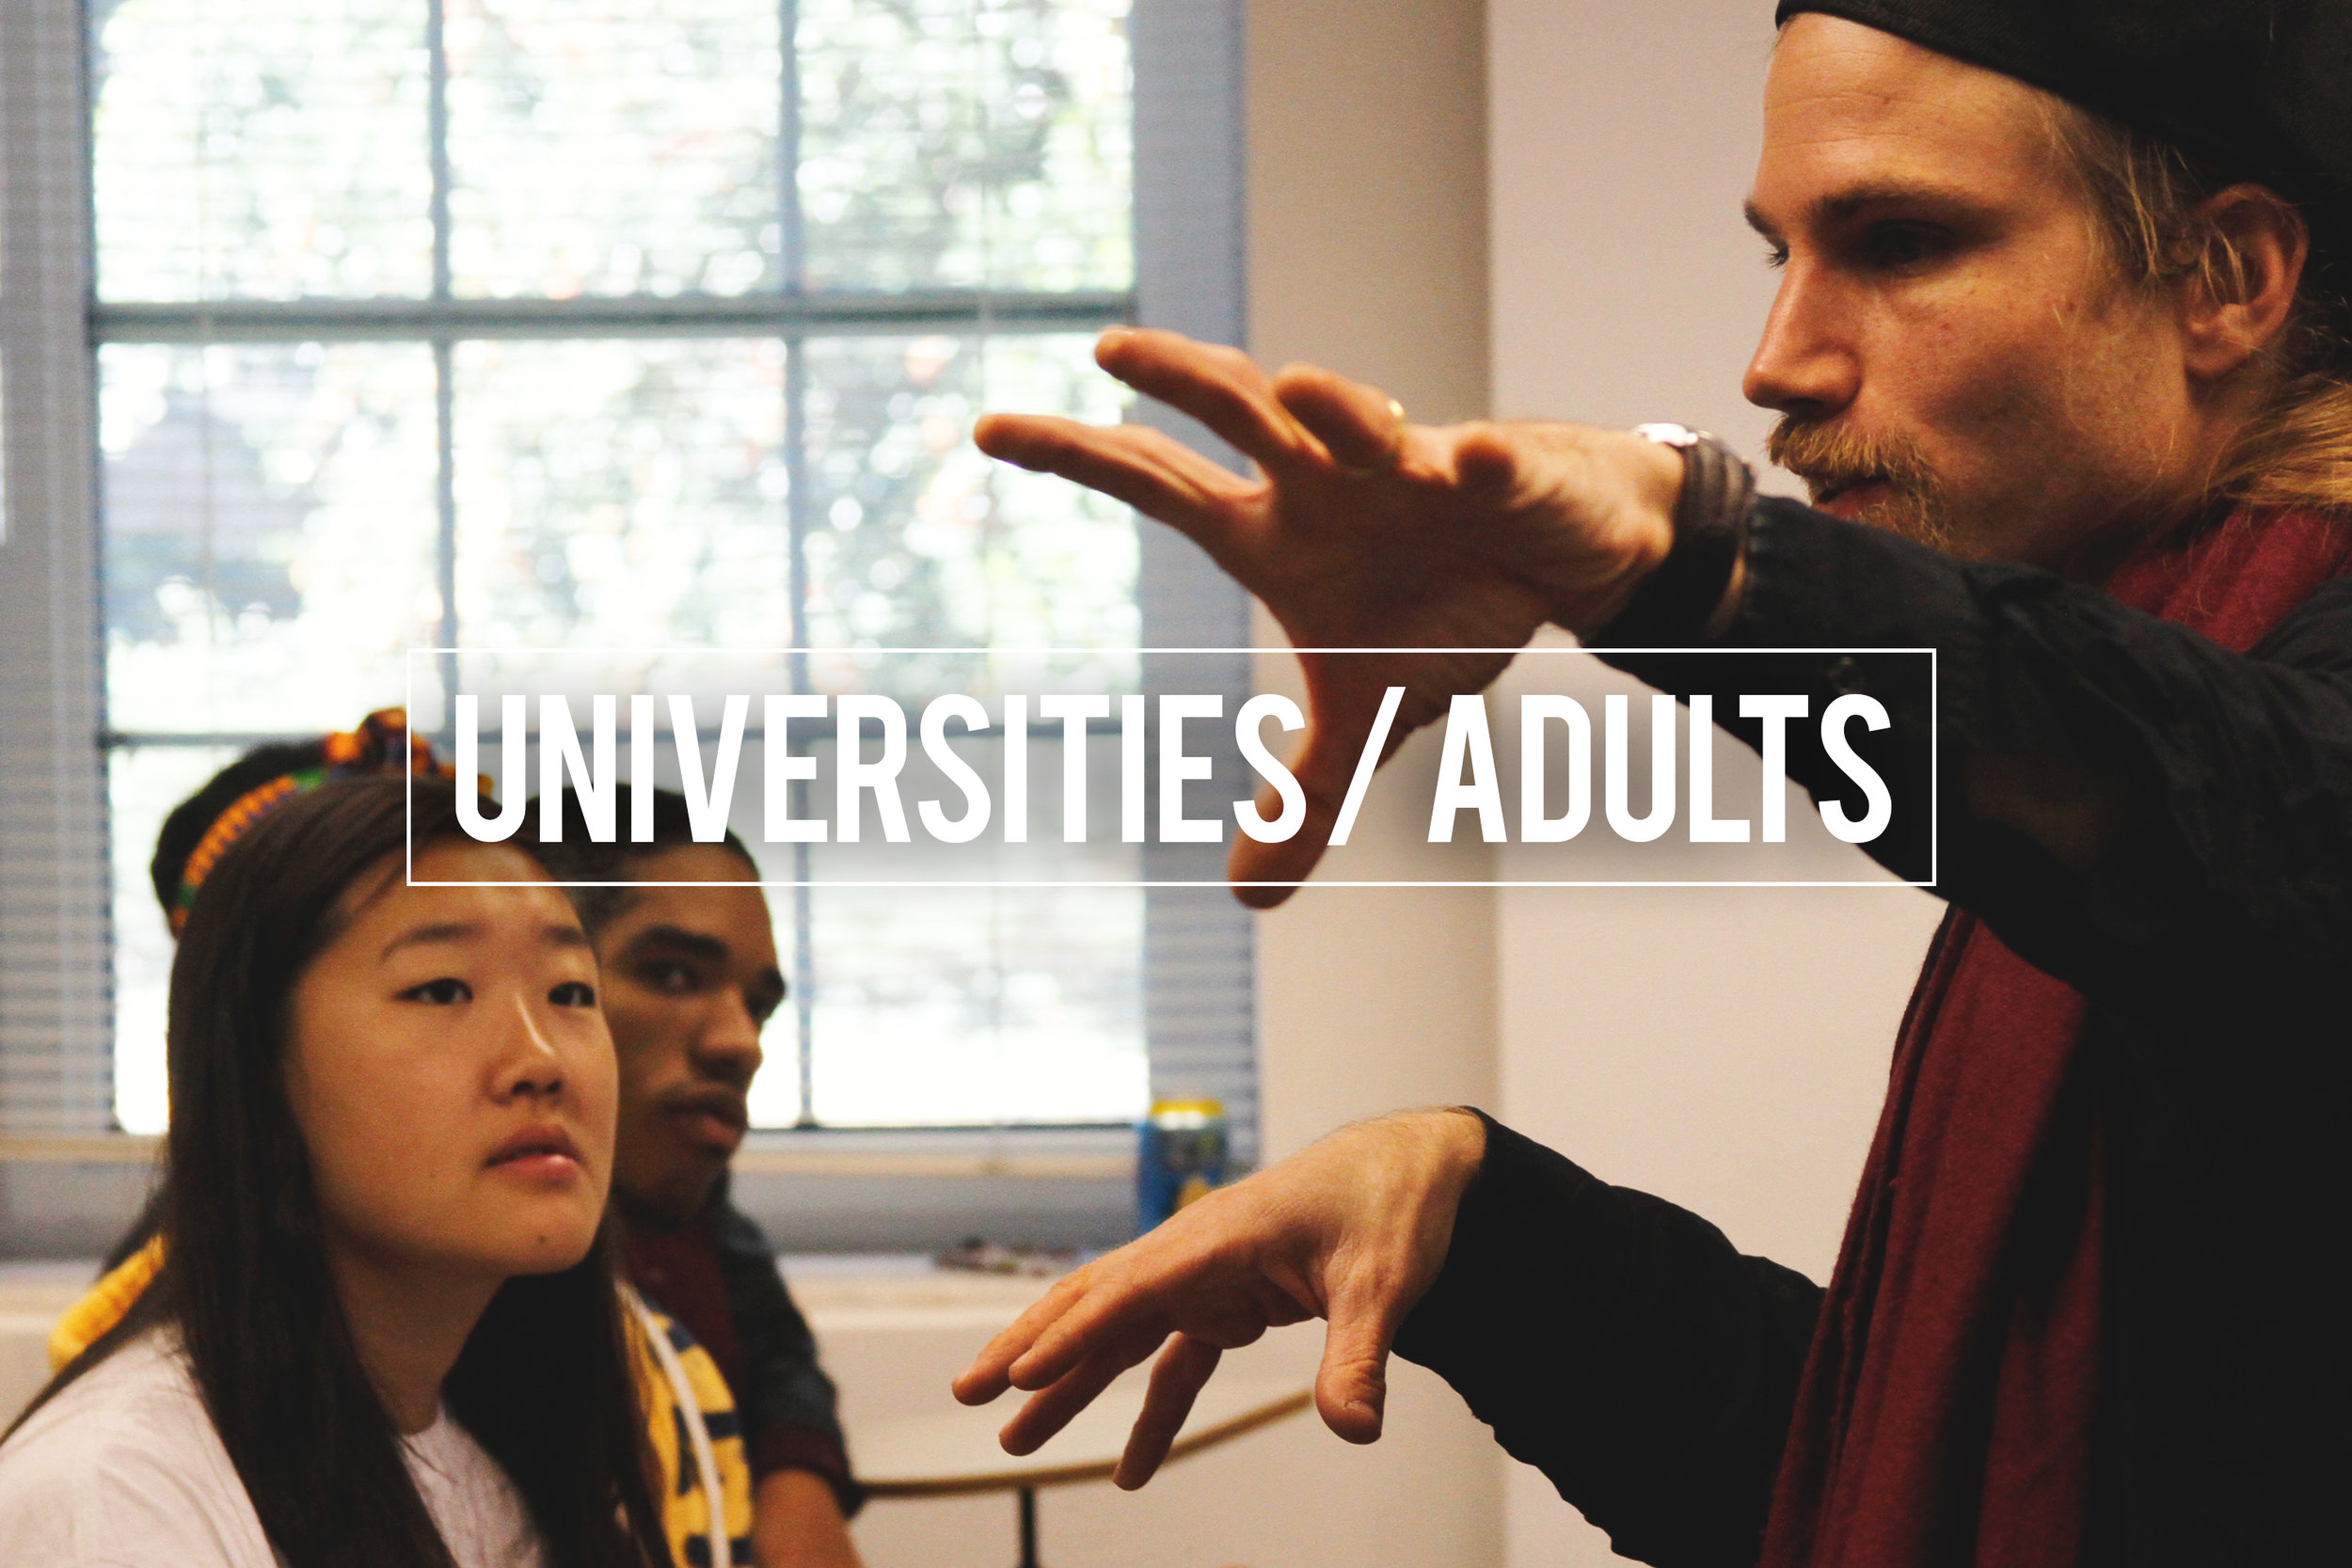 L ectures and Masterclasses for  Universities & Adults  on Campus / in the theatre